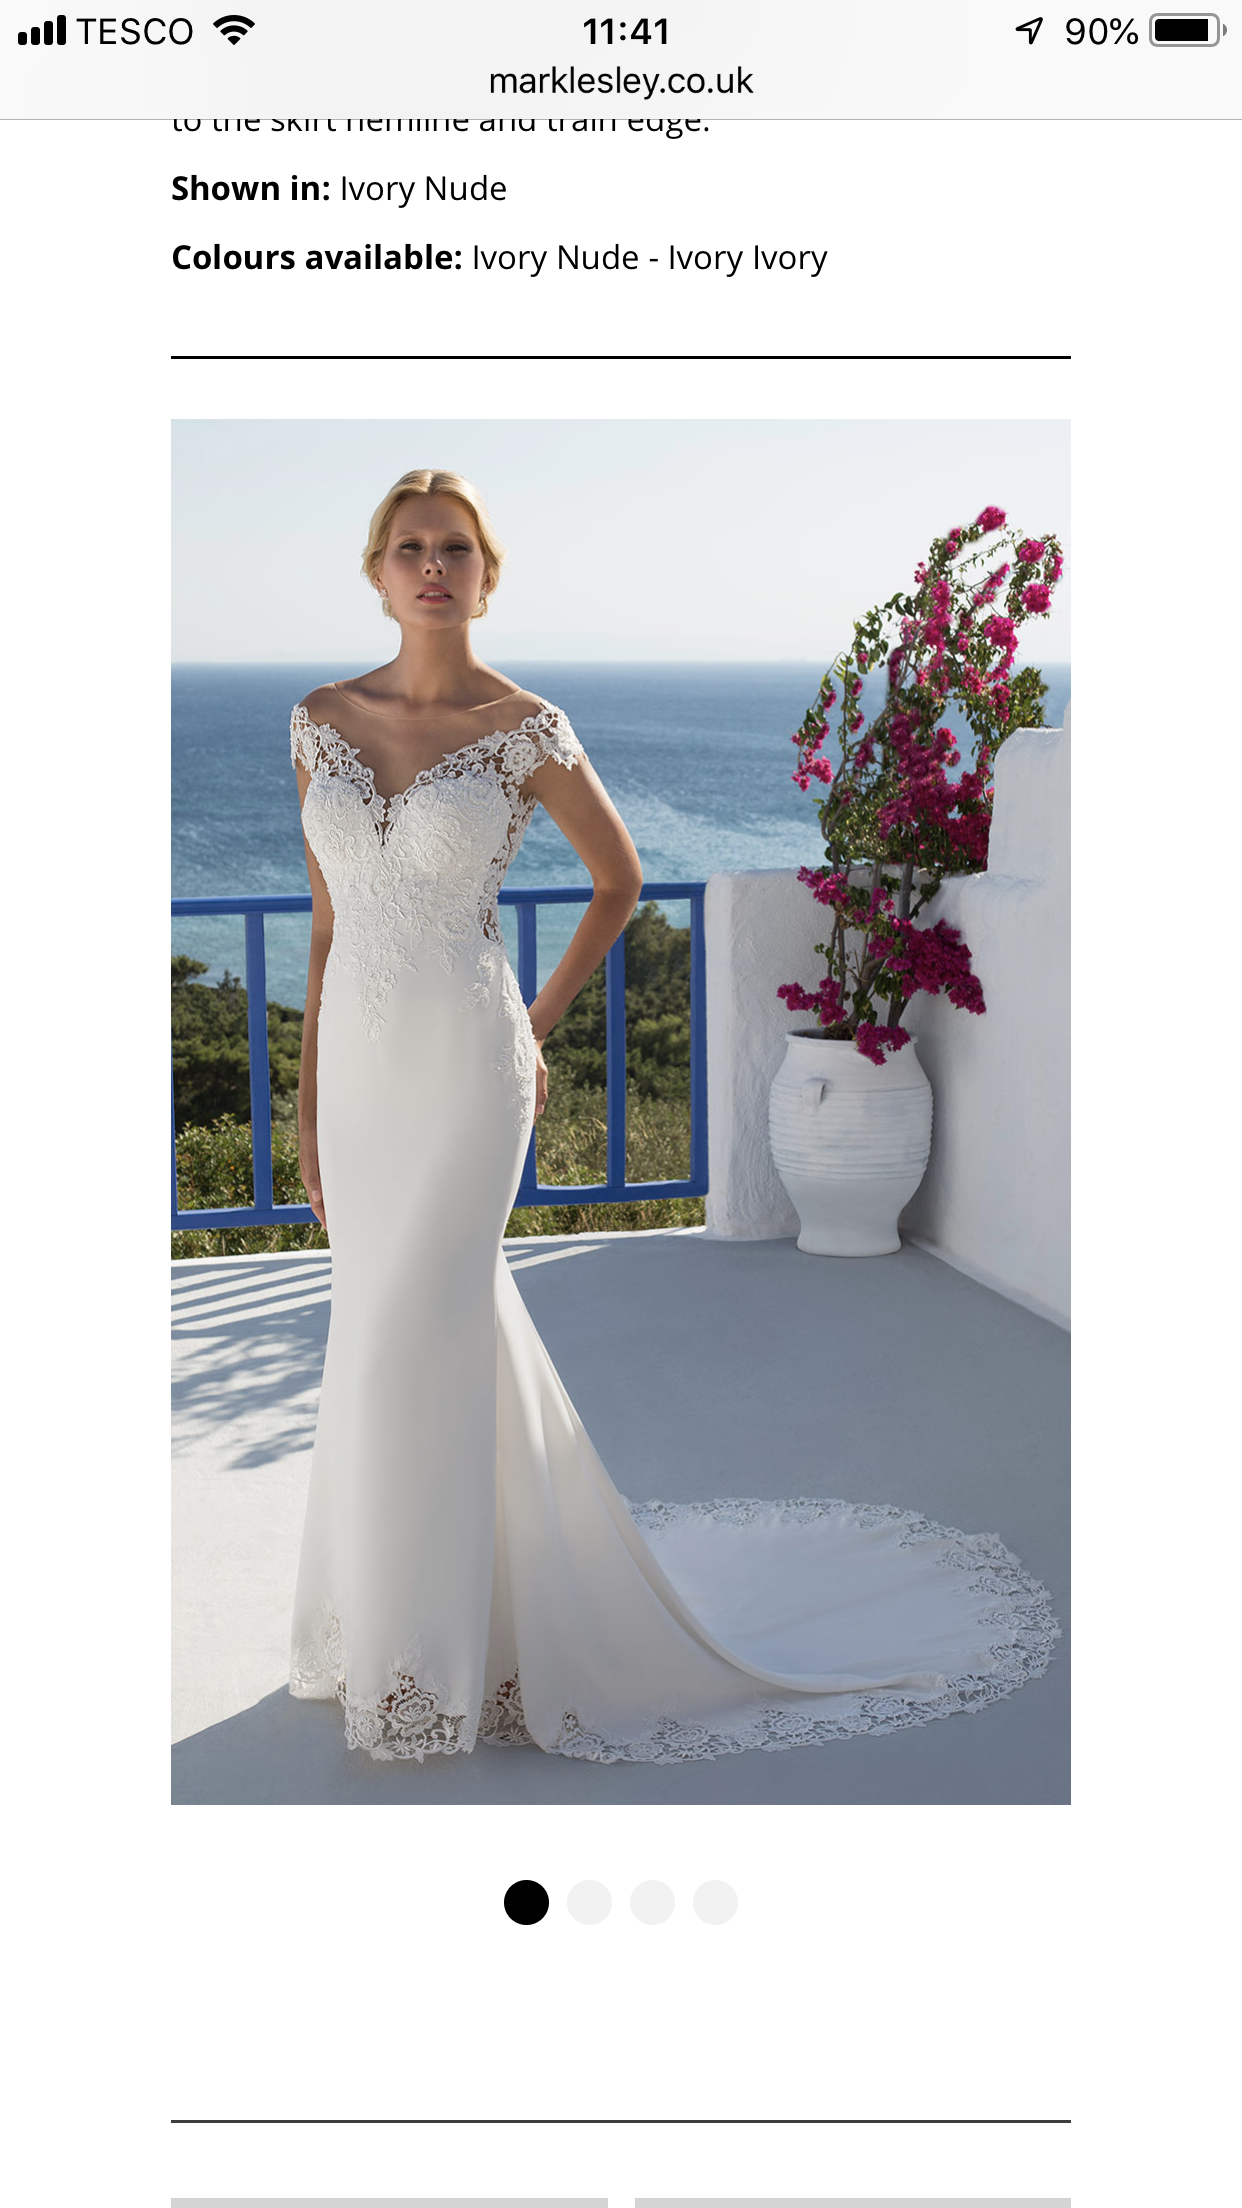 Mark Lesley Designer Gown Sell My Wedding Dress 1200 00 In